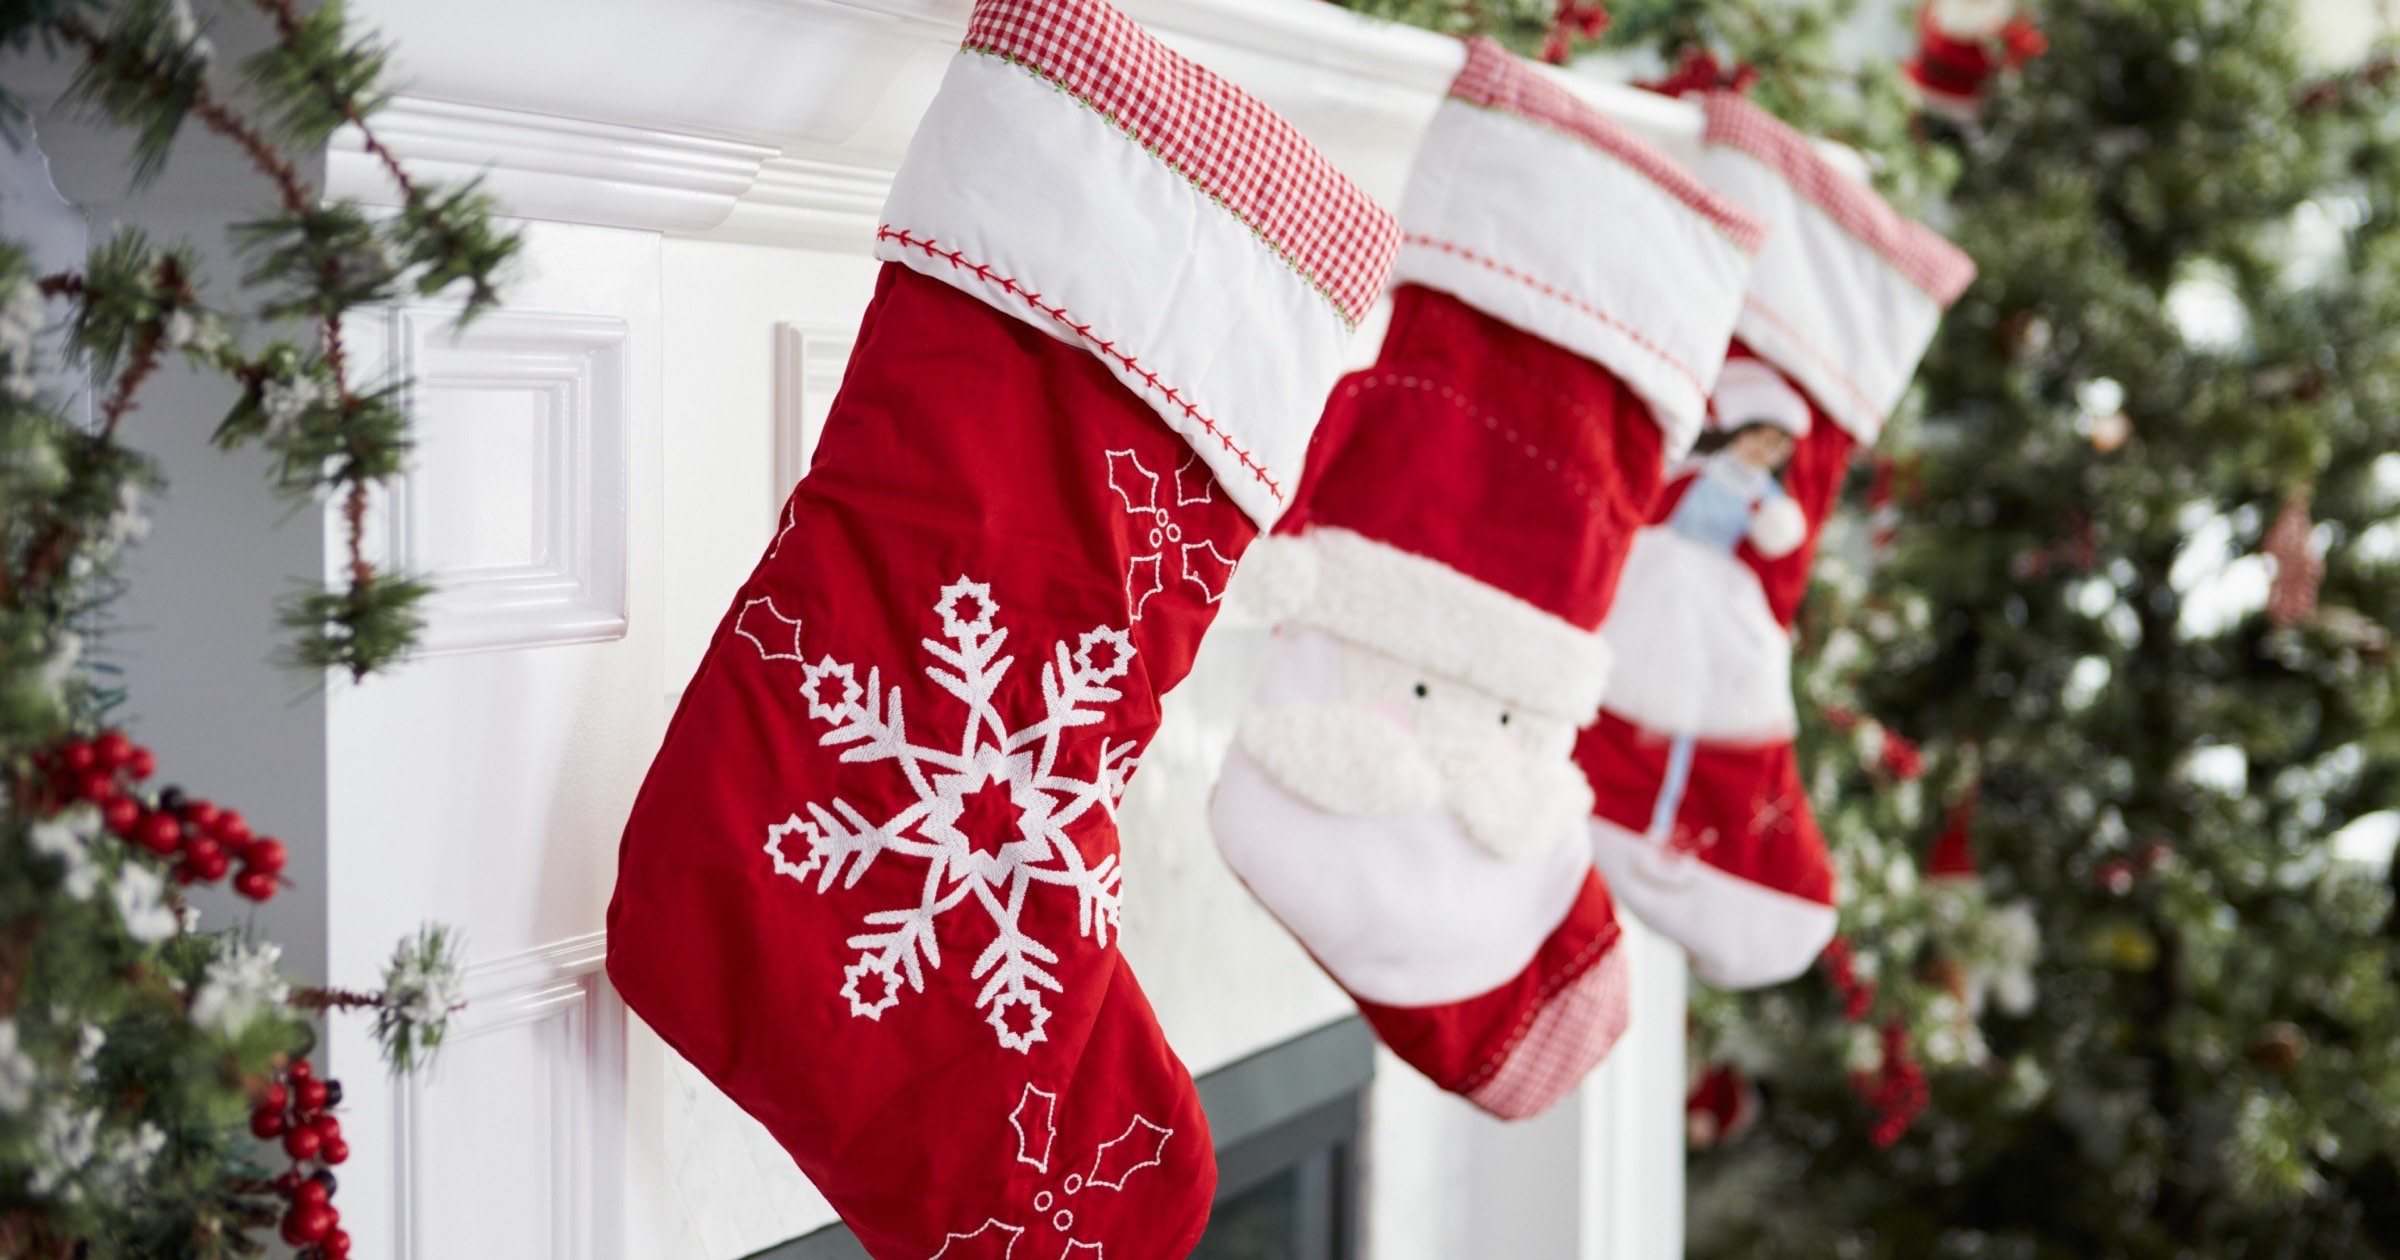 Christmas stockings hanging on a fireplace.